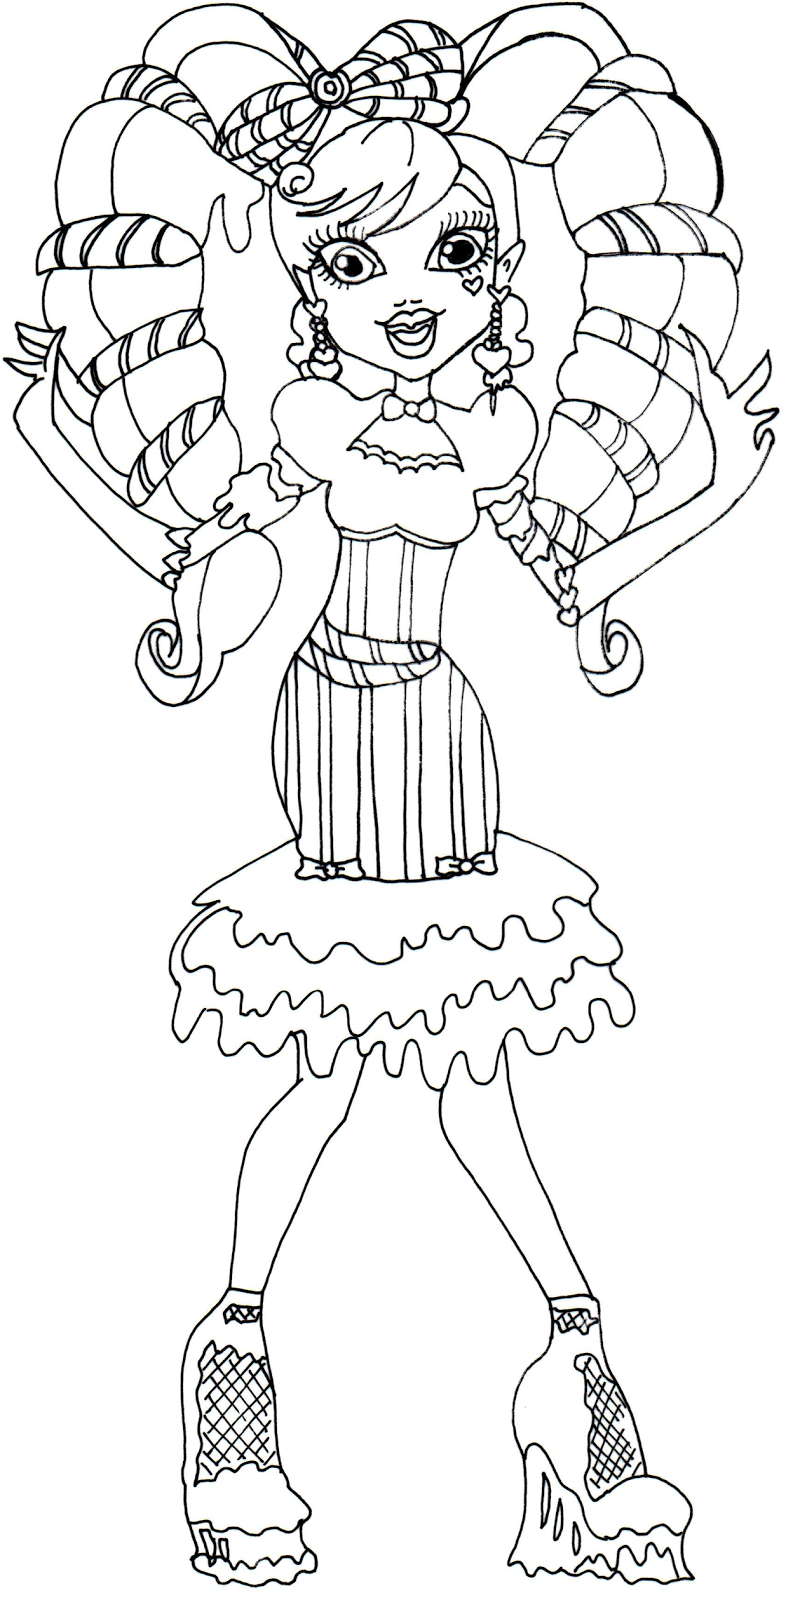 Monster High (37) - Printable coloring pages